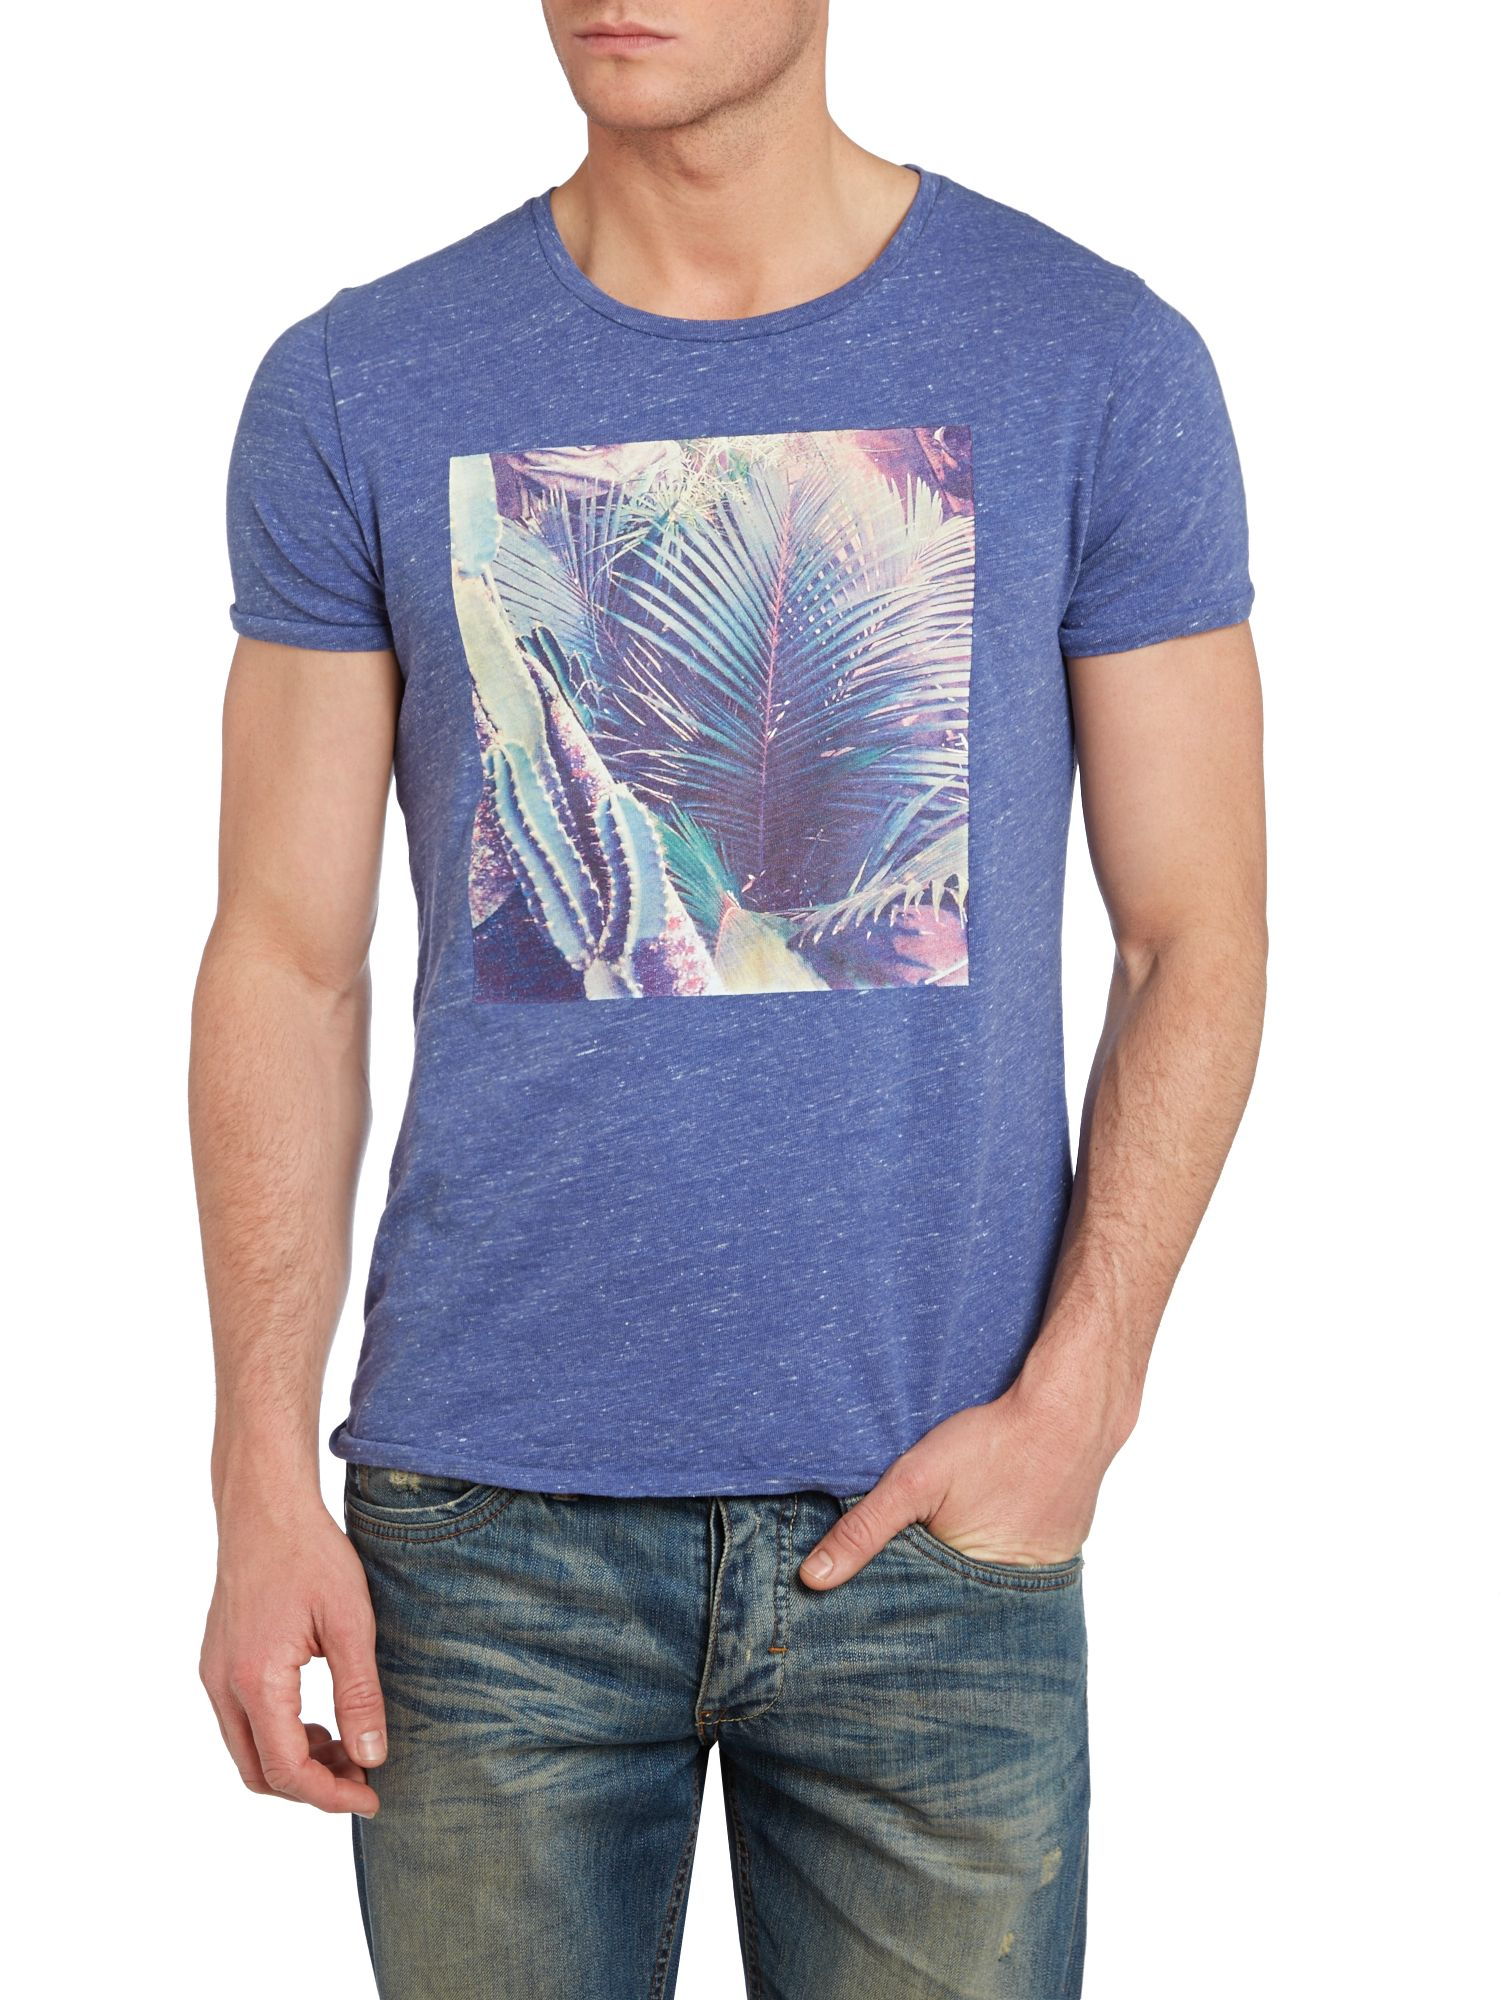 Botantical photo printed tee